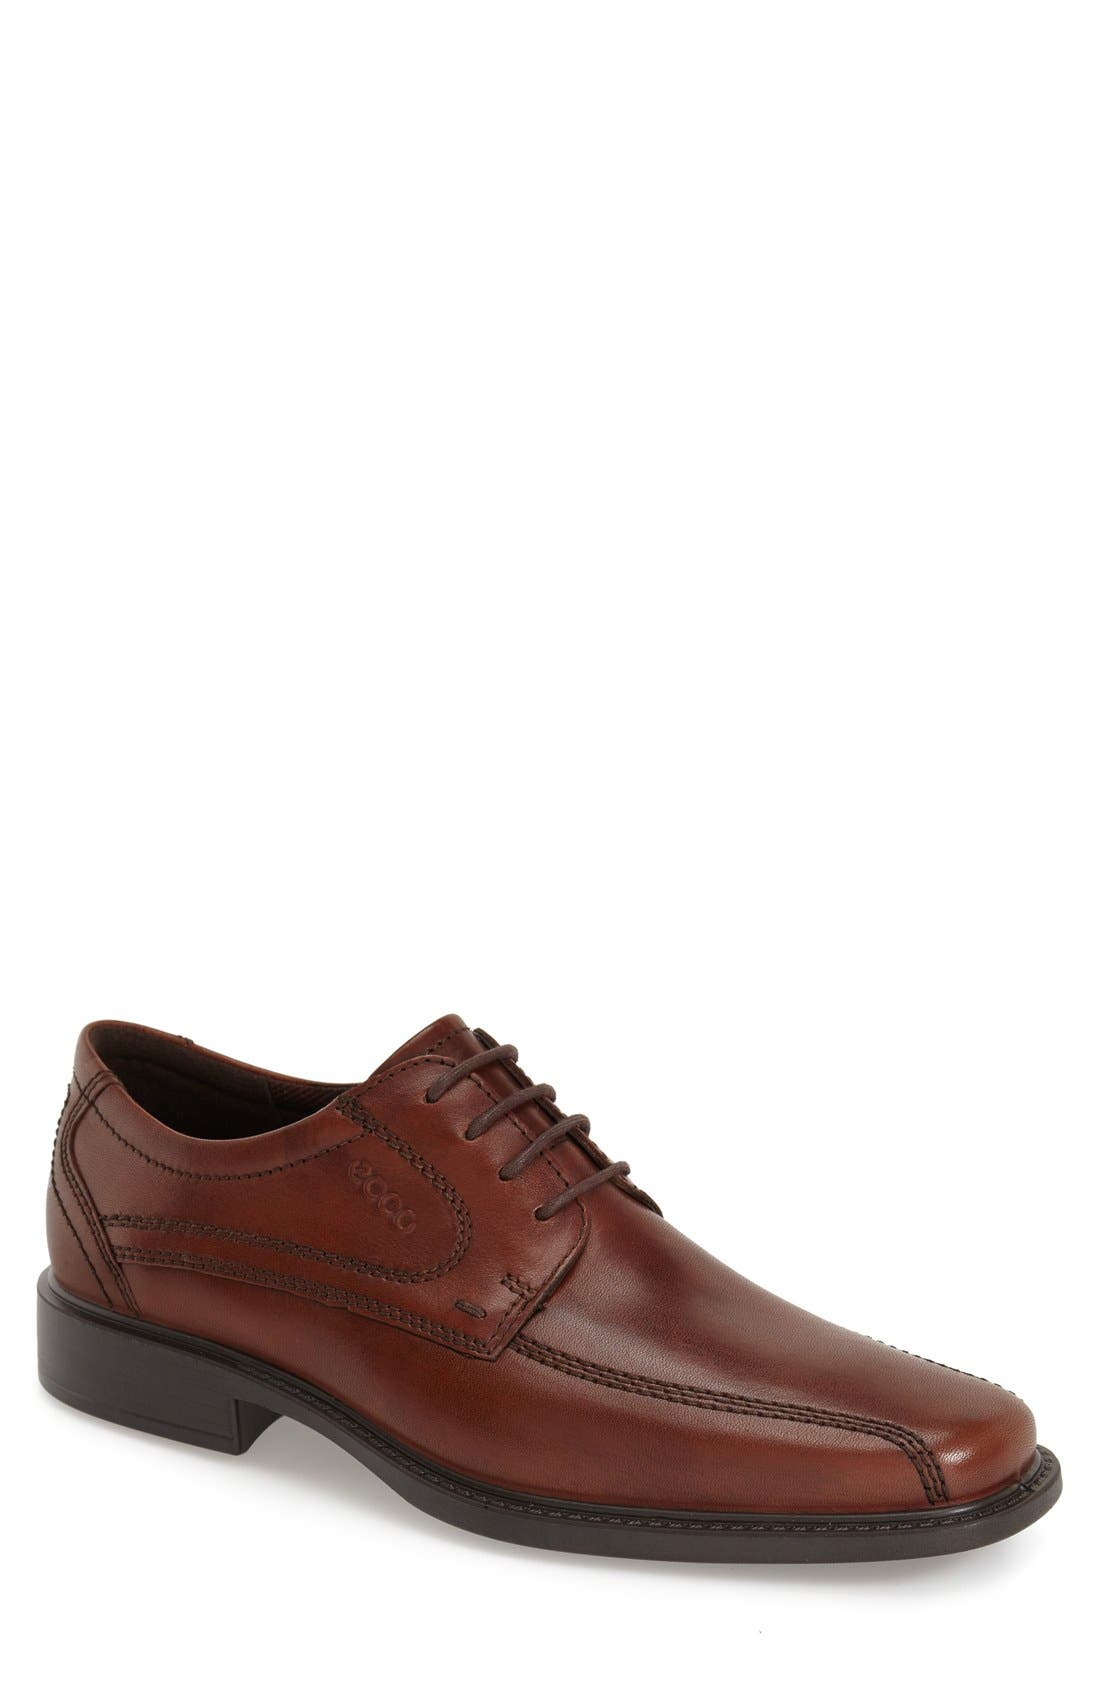 Alternate Image 1 Selected - ECCO 'New Jersey' Bicycle Toe Oxford